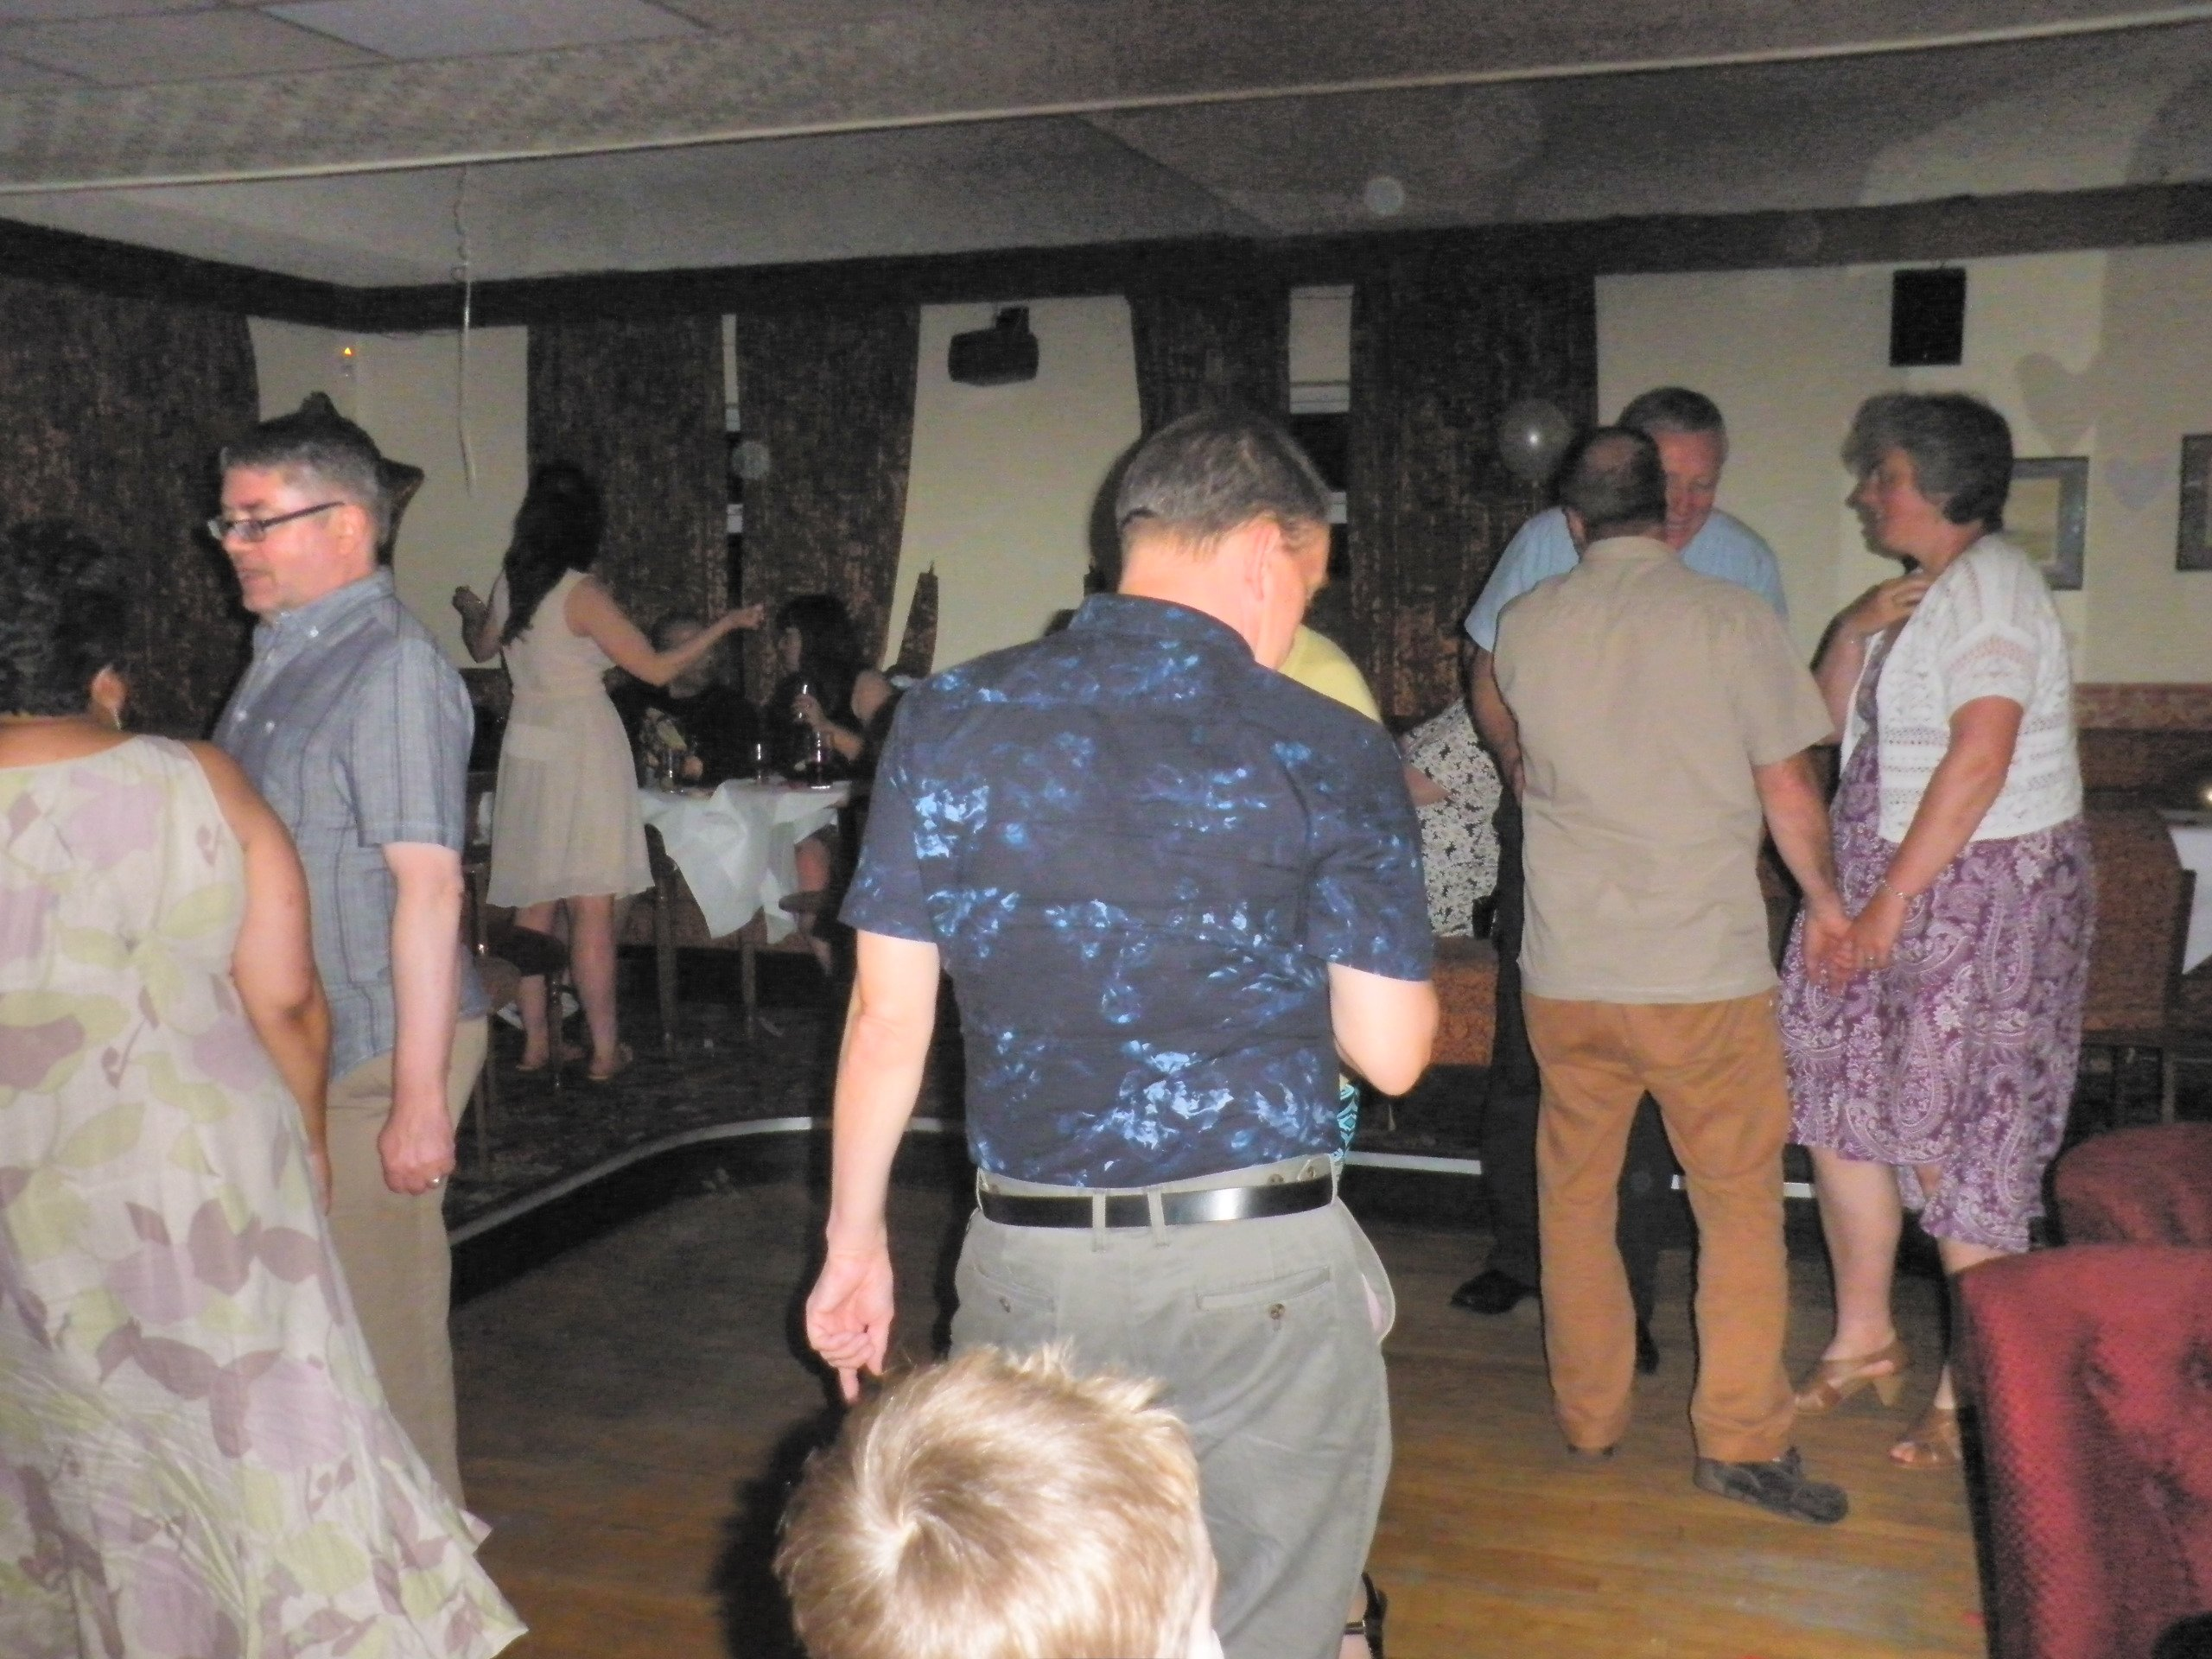 gathering in a dance room